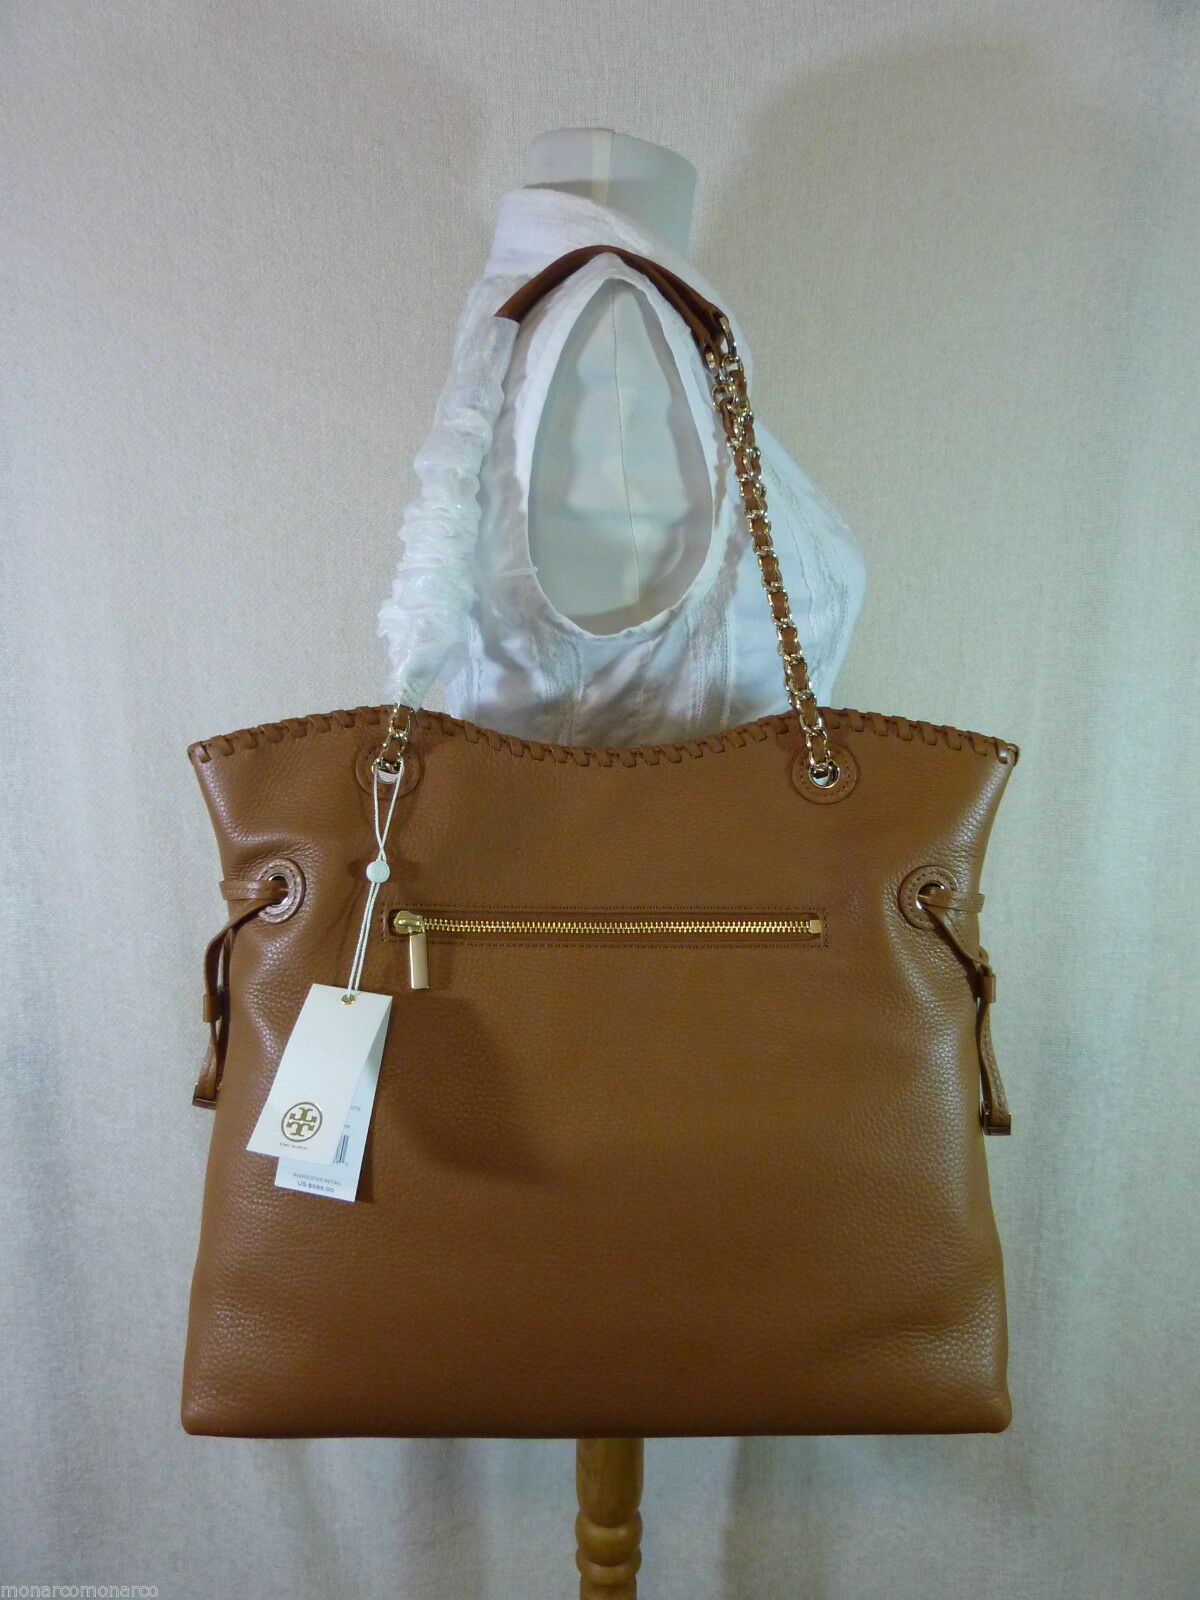 NWT Tory Burch Bark Brown Pebbled Leather Marion NS Slouchy Tote